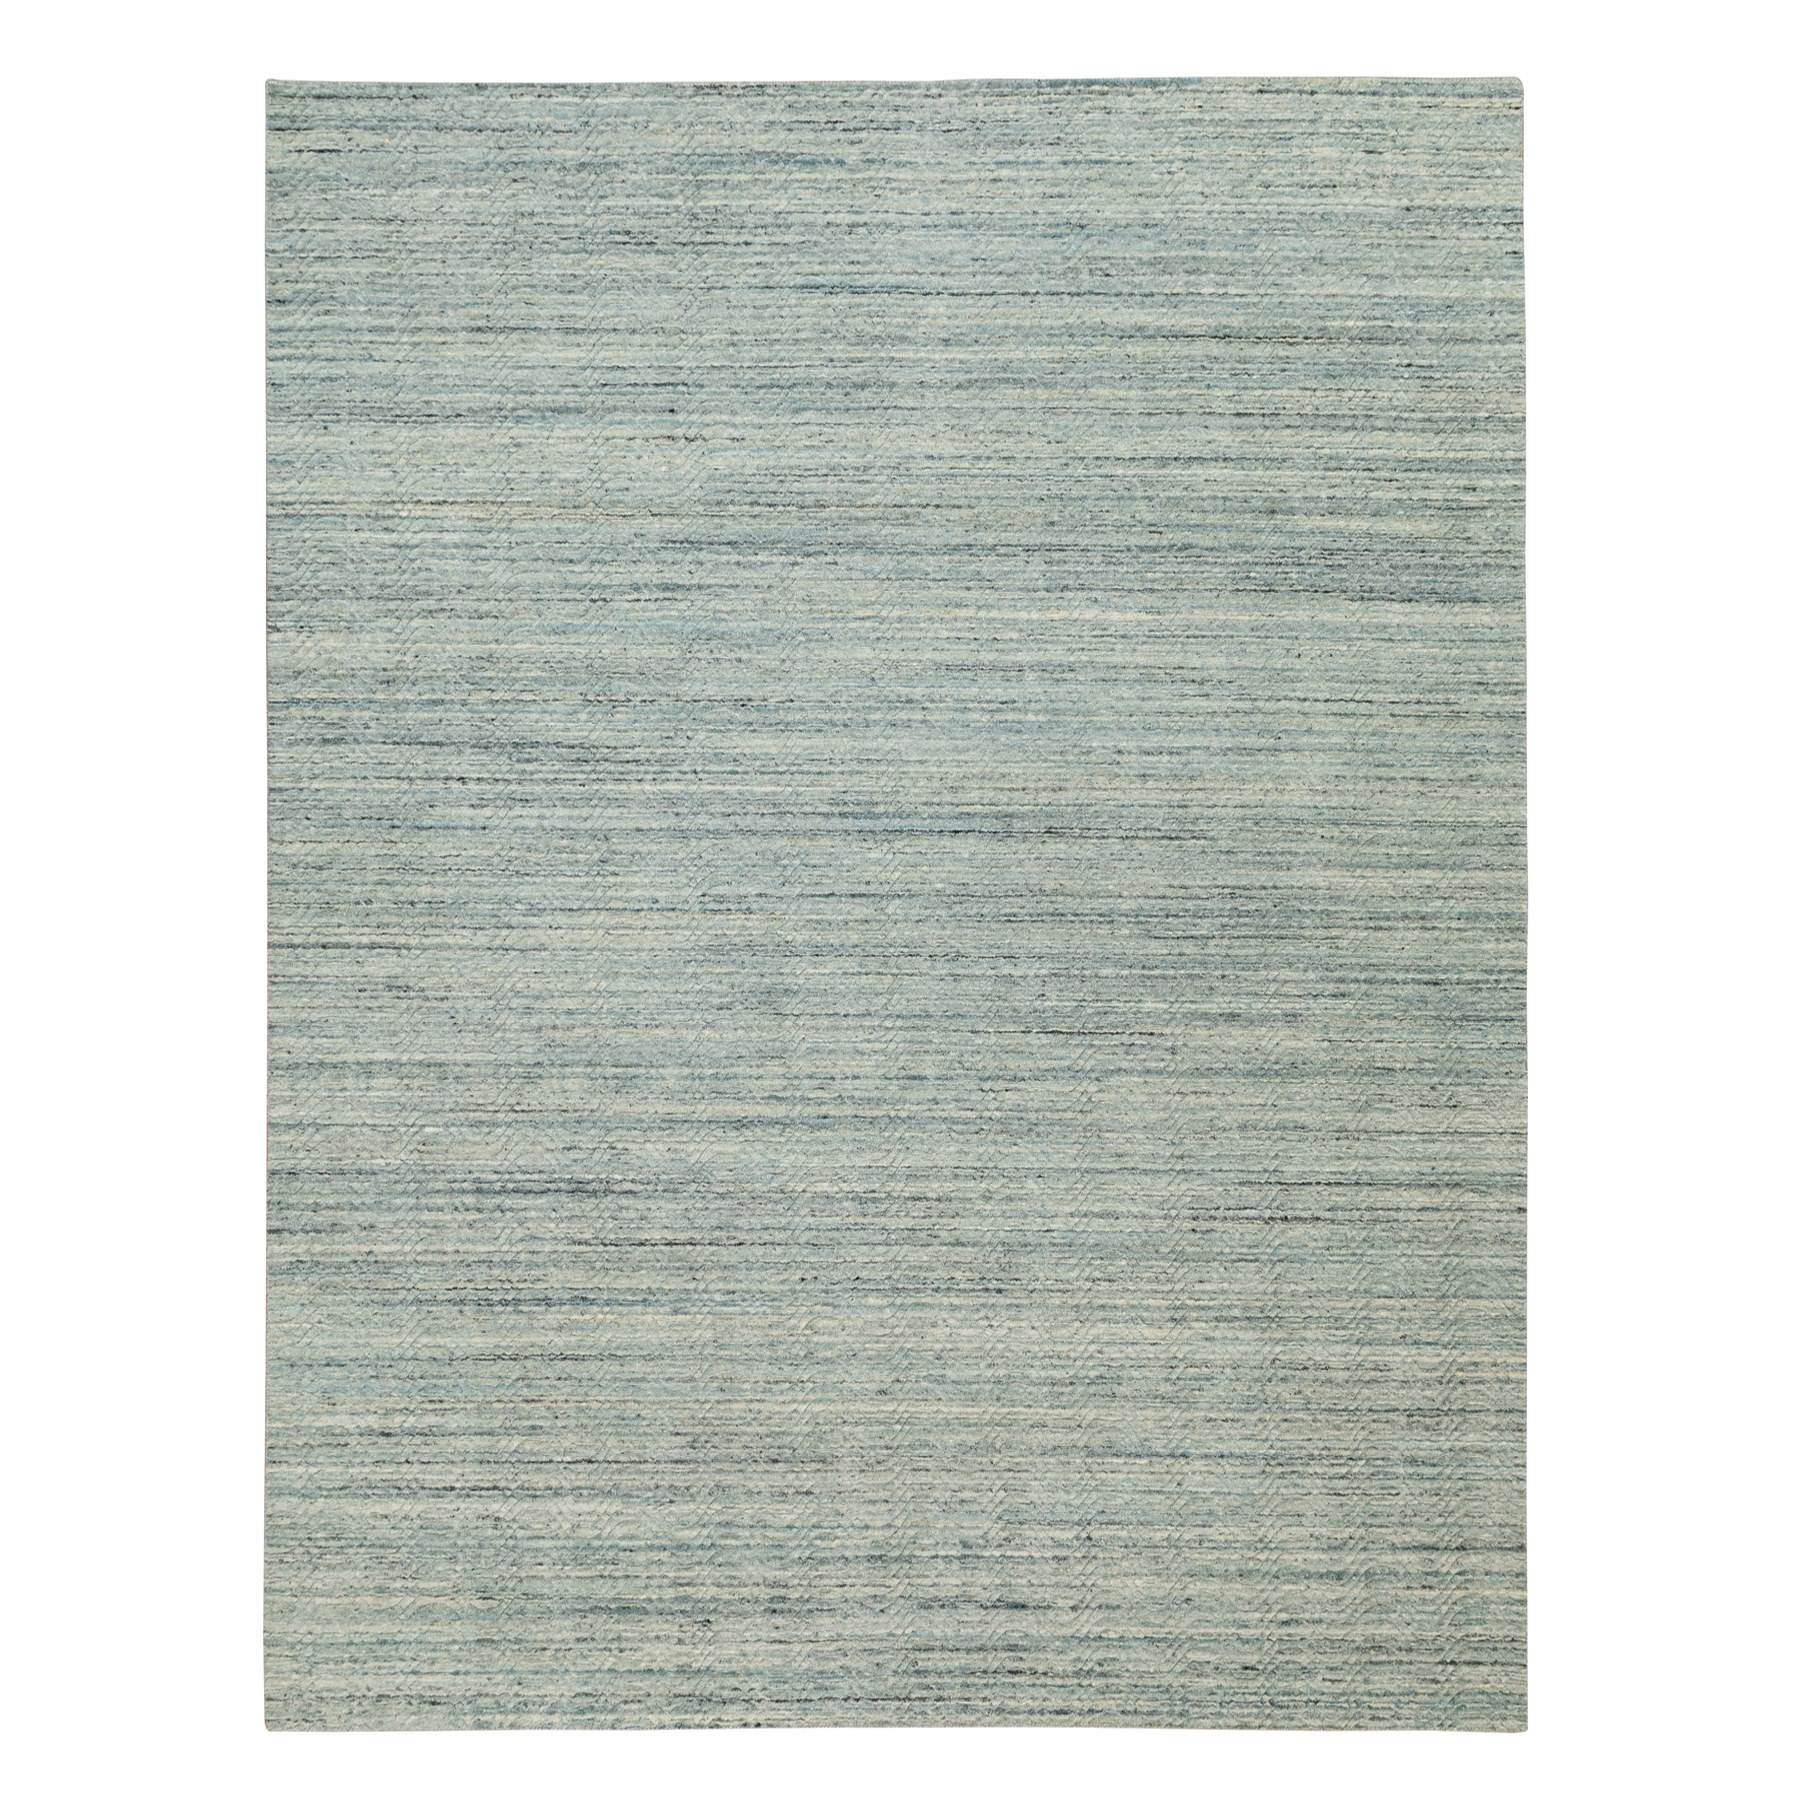 "9'x11'10"" Green Hand Loomed Variegated Textured Design Organic Wool Transitional Oriental Rug"